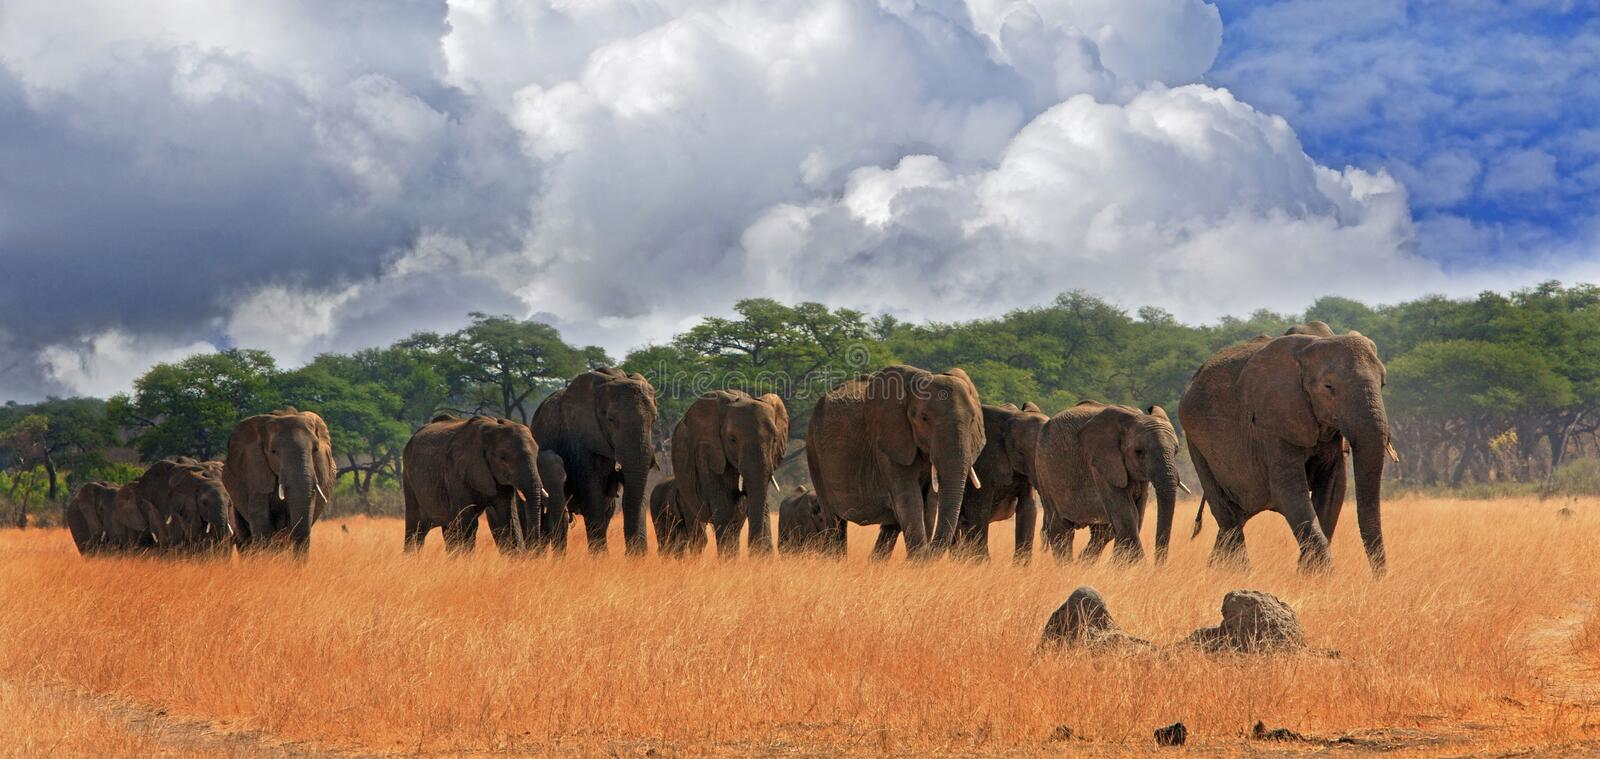 Herd of elephants walking across the plains in Hwange National Park. A parade of elephants walking across the plains in Hwange National Park with blue cloudy sky stock image